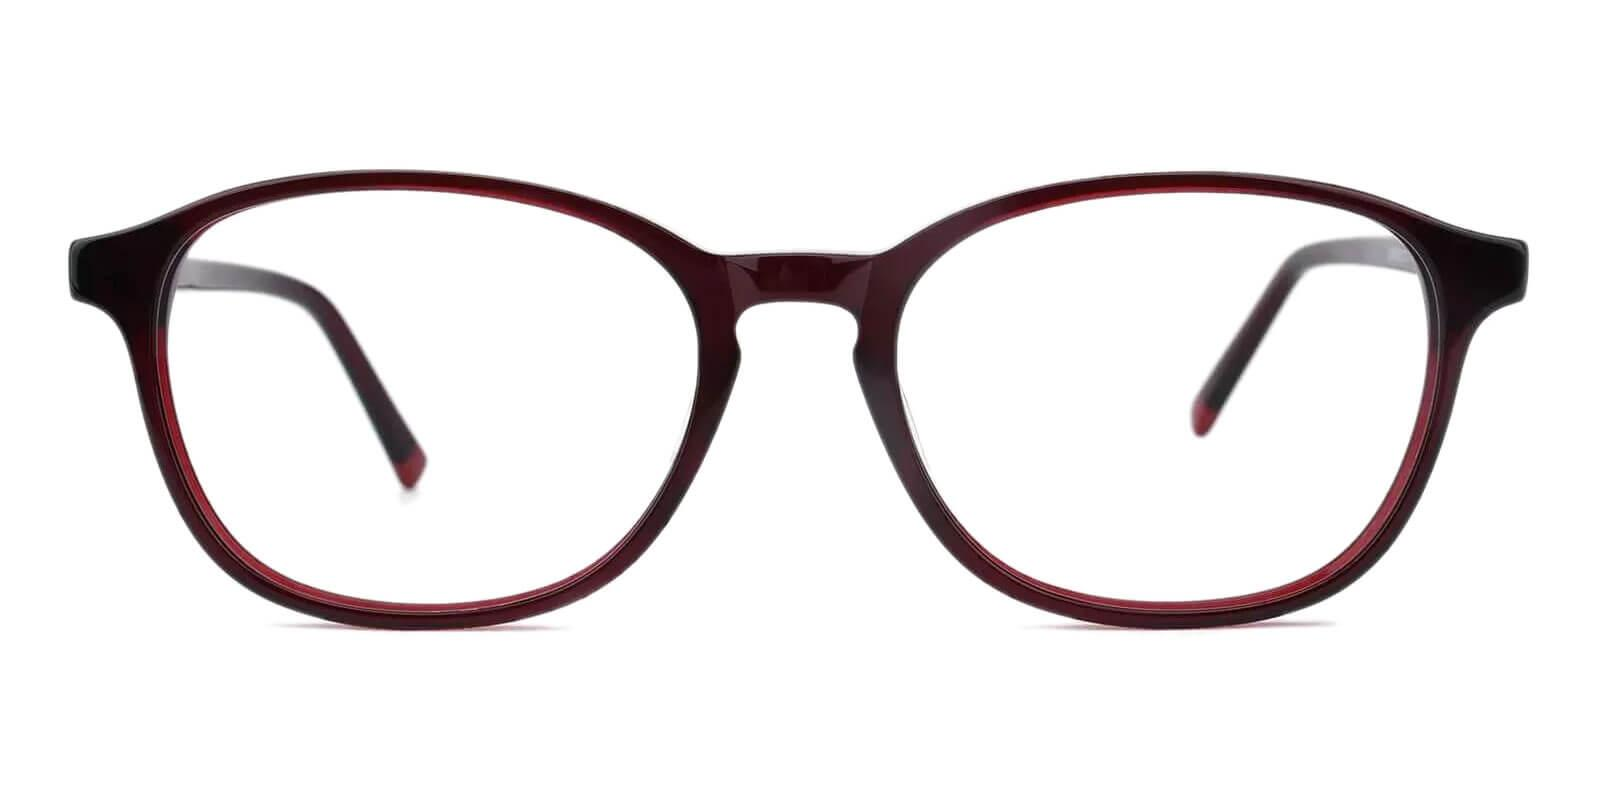 Fogelsville Brown Acetate Eyeglasses , SpringHinges , UniversalBridgeFit Frames from ABBE Glasses